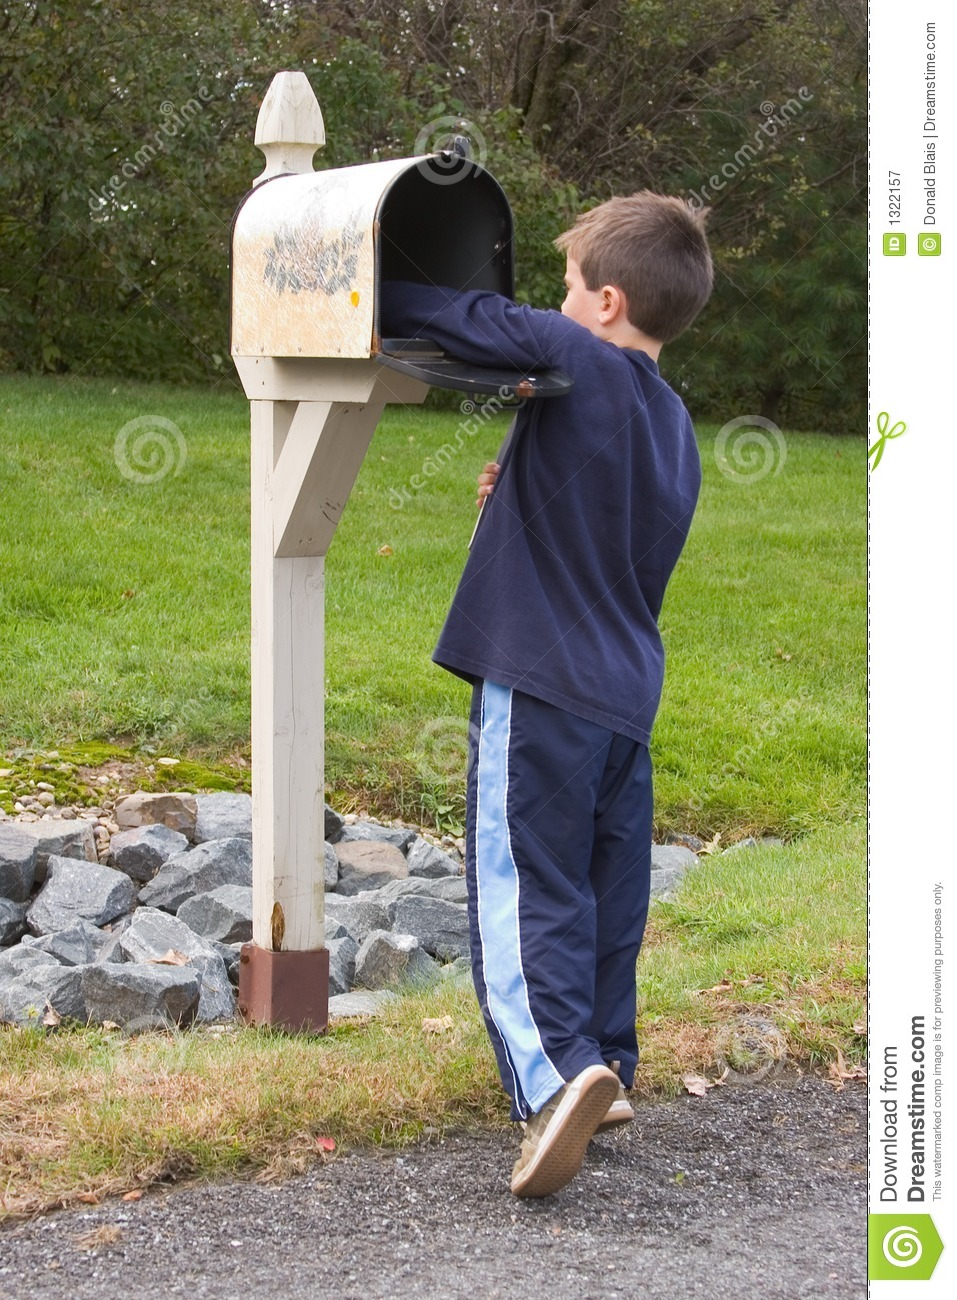 Boy Getting Mail Stock Image. Image Of Mailbox, Postal